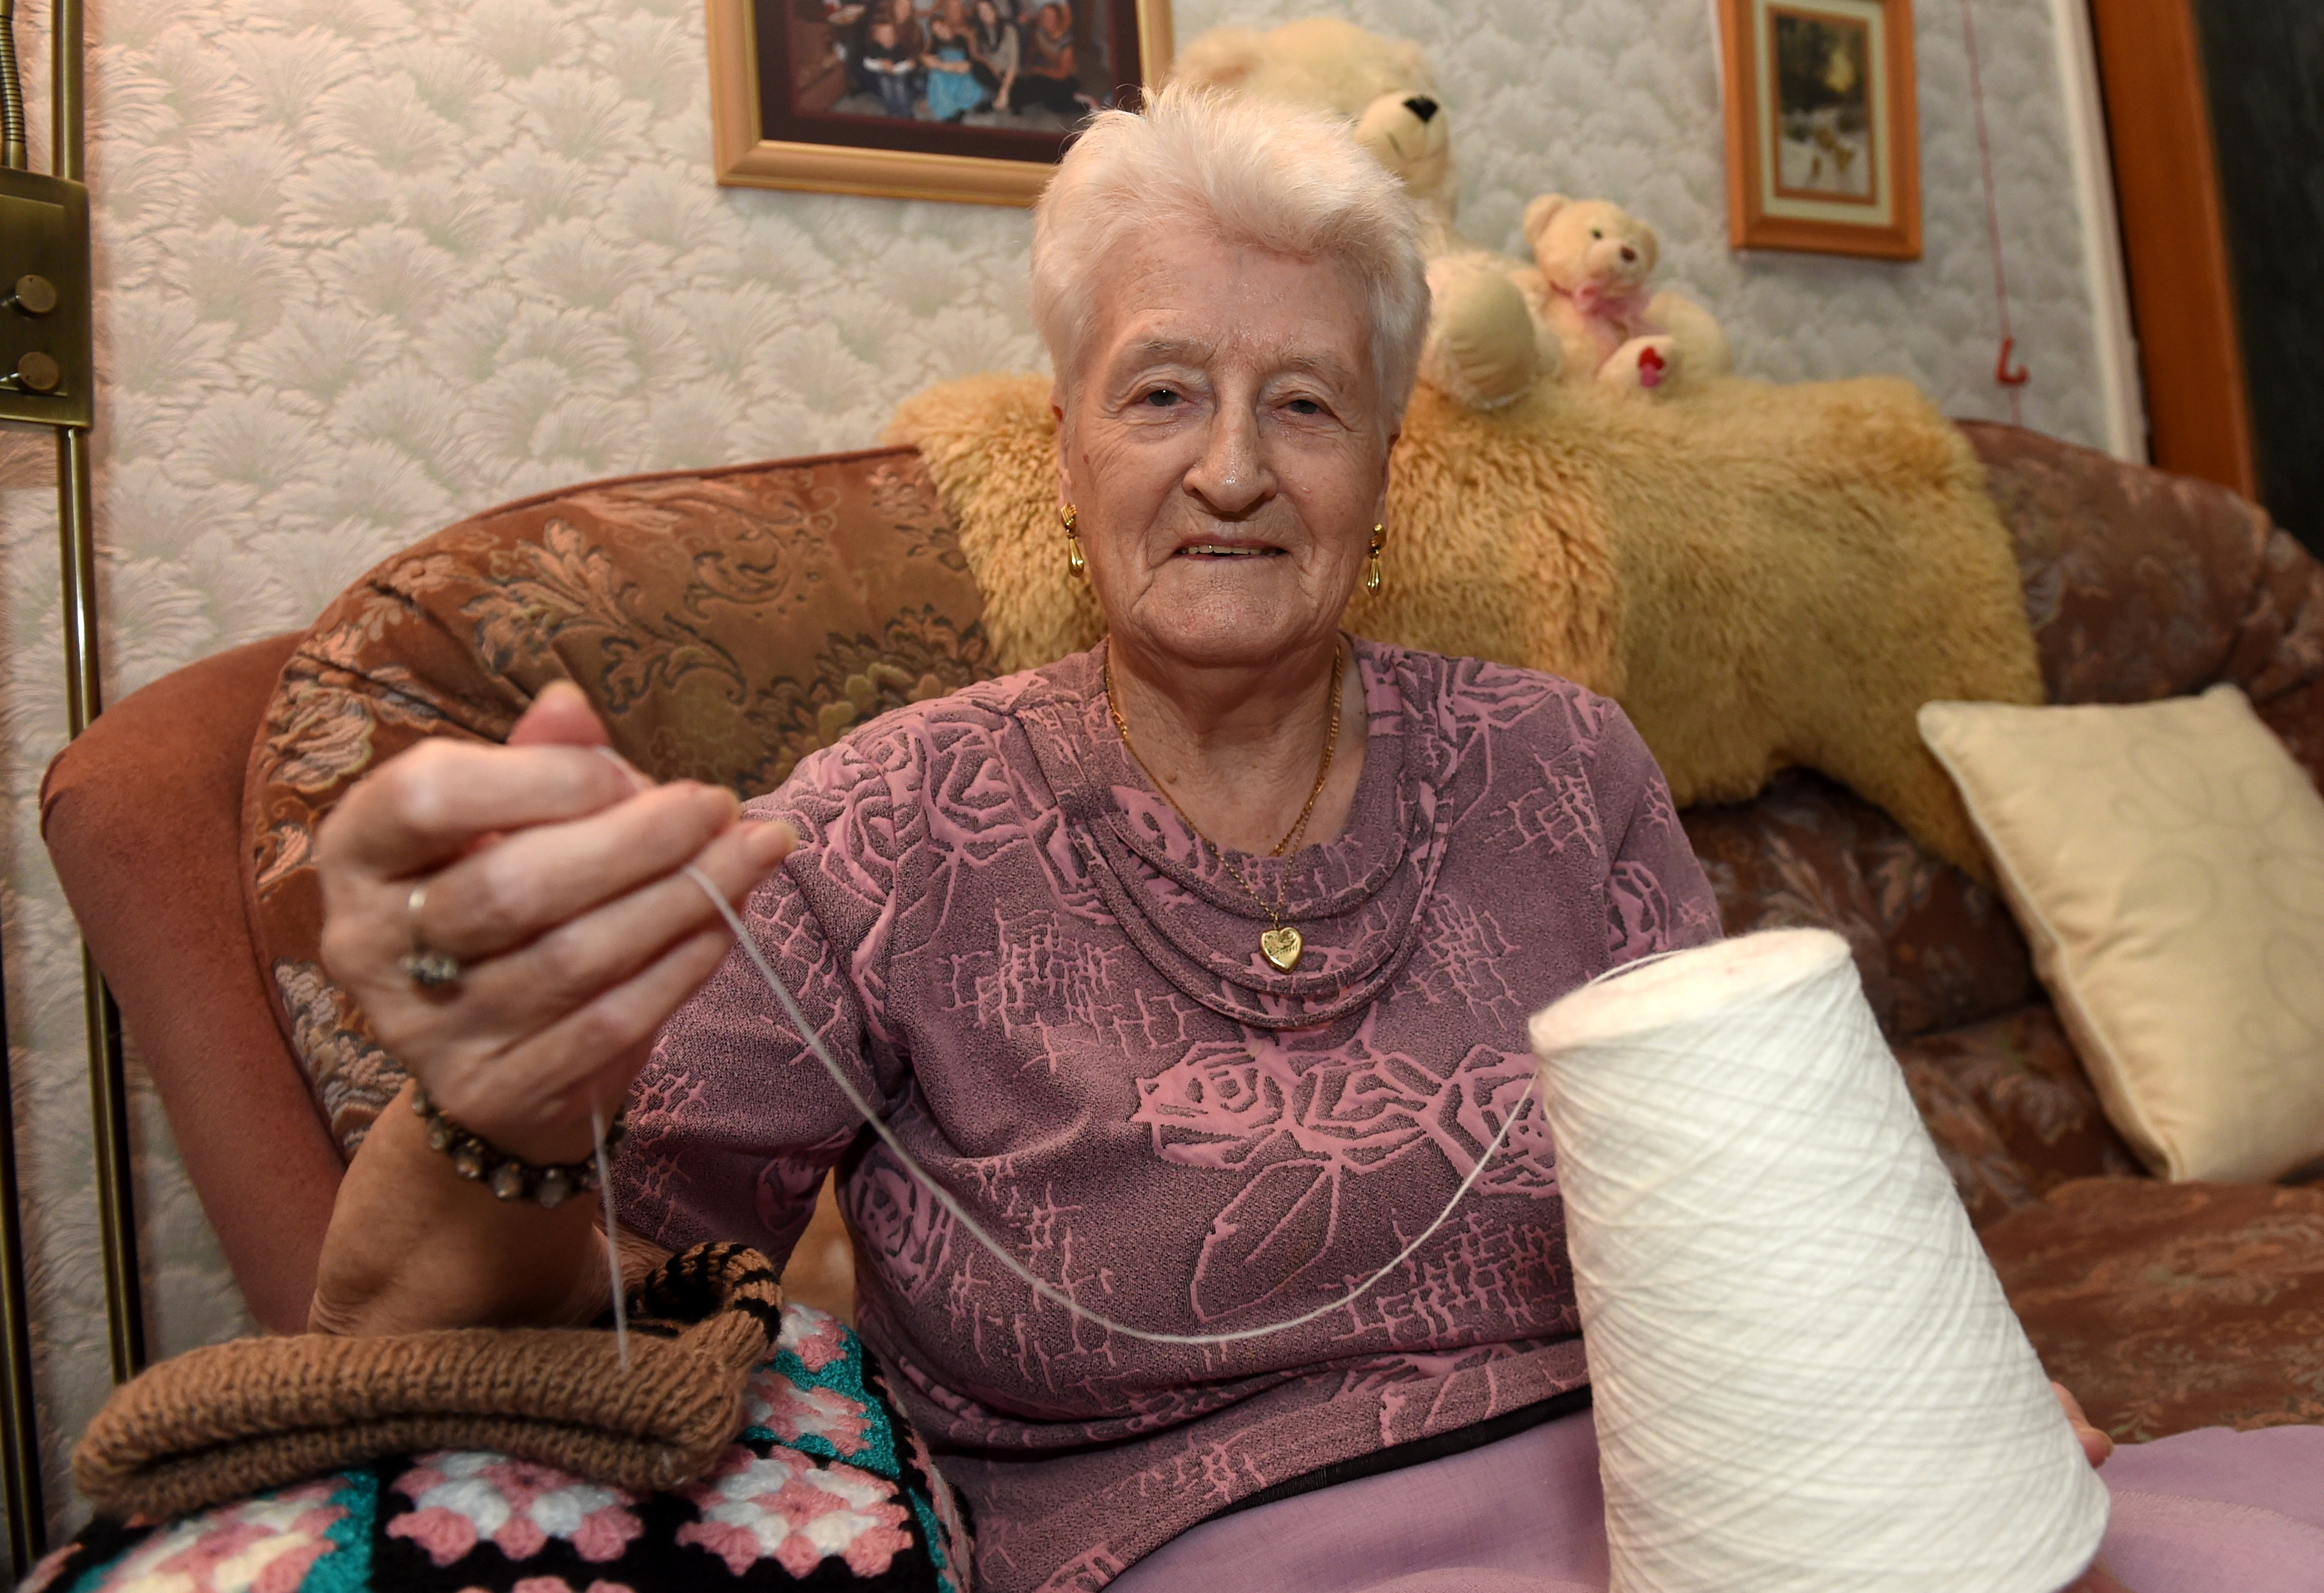 89-year-old Margaret has knitted all of her life.